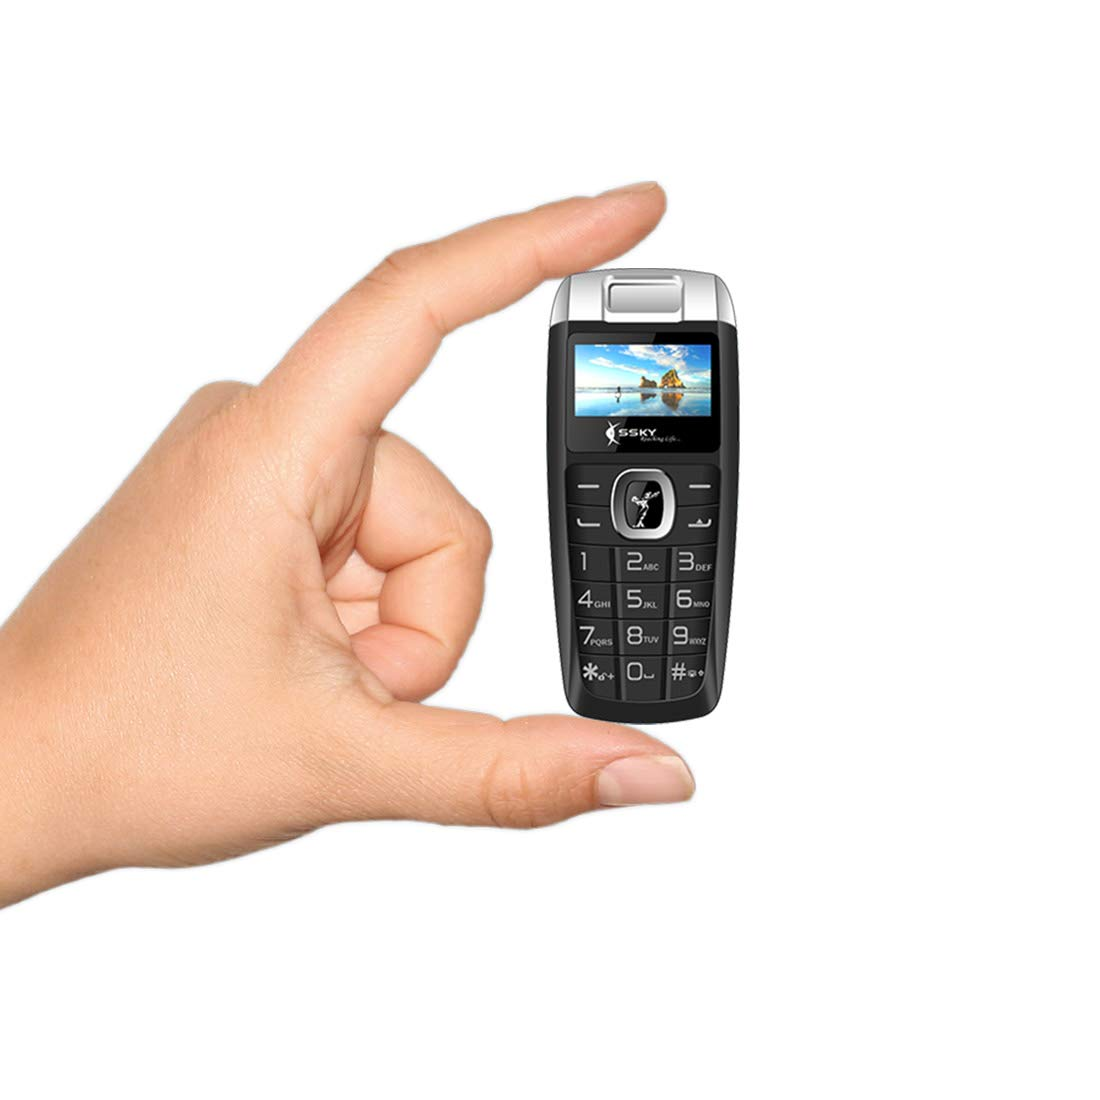 Worlds Smallest Dual Sim Mini Mobile Phone Guys World - Mobiles Mini Waschbecken